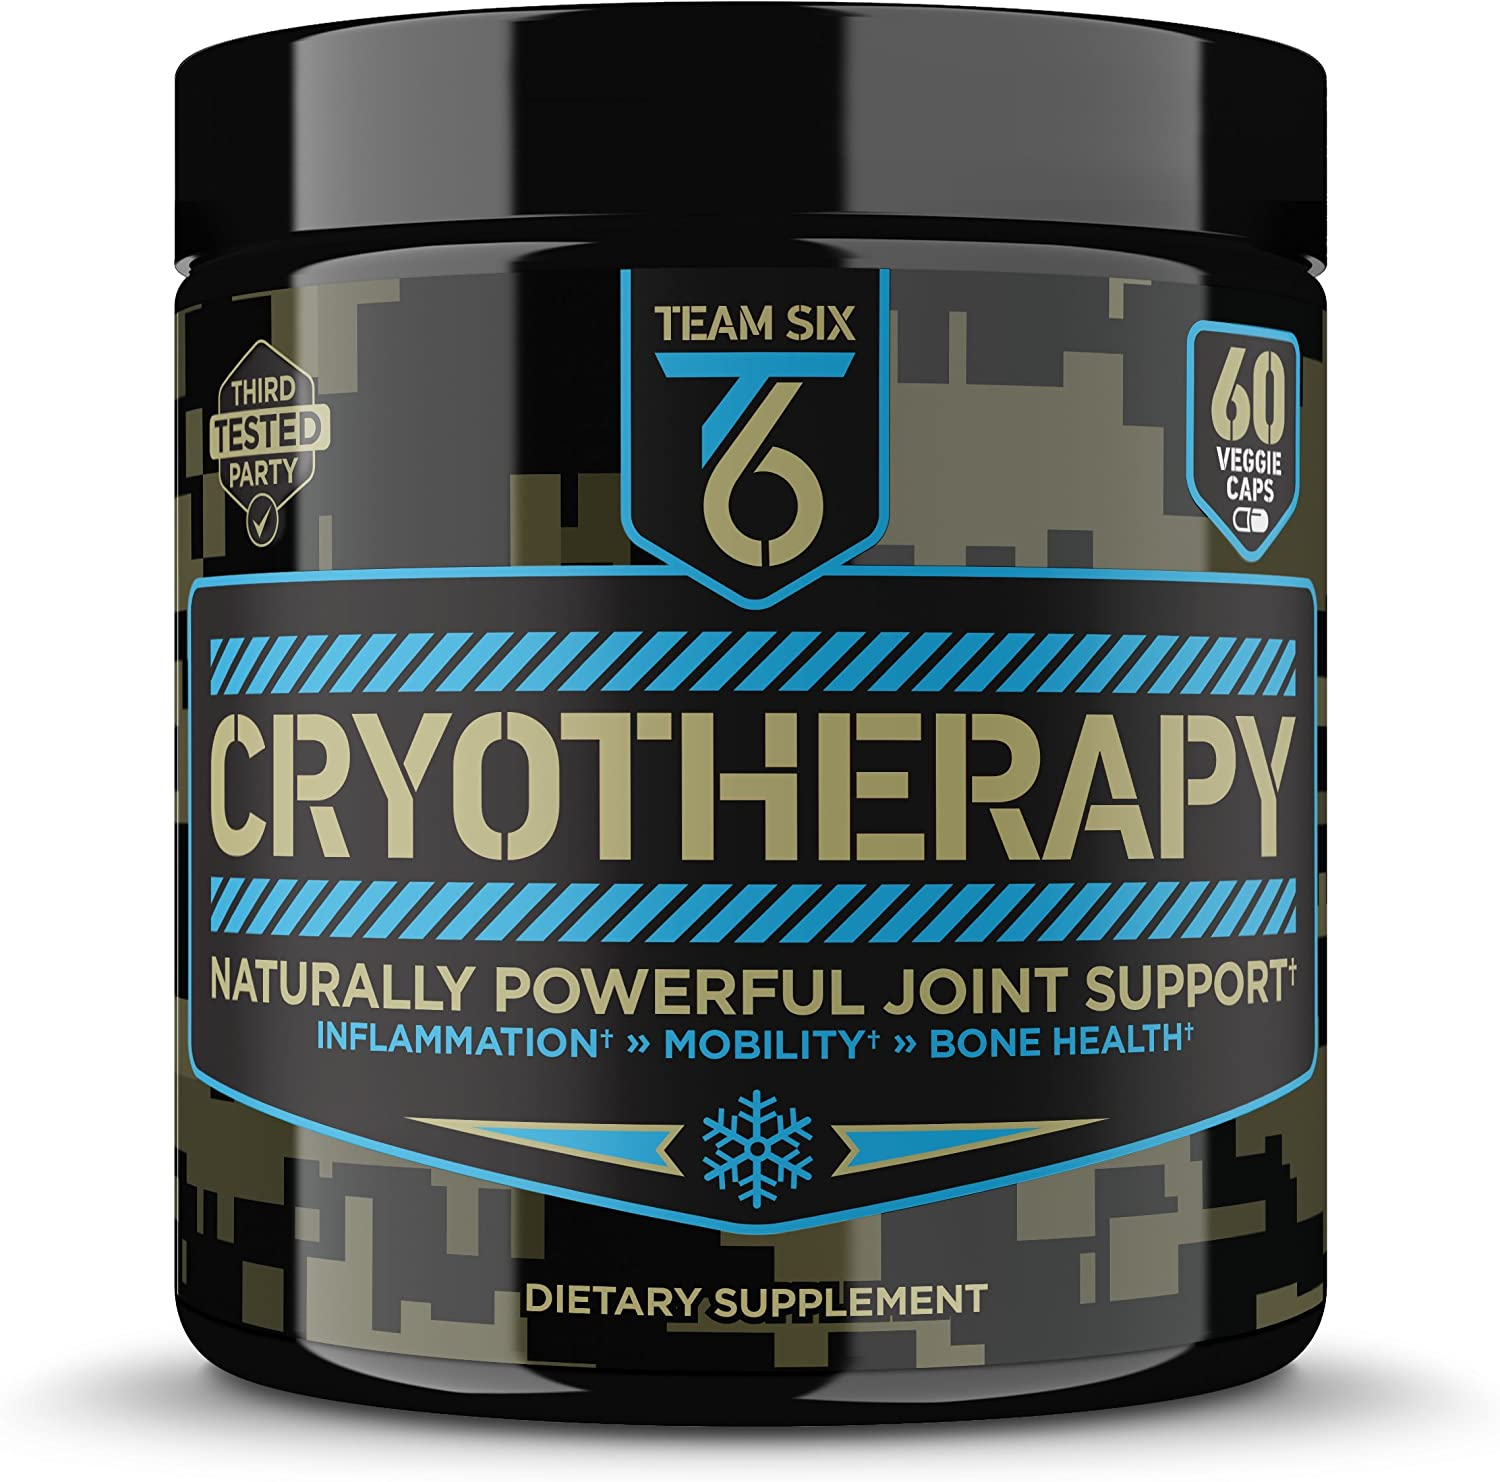 T6 Cryotherapy - Natural Joint Support Supplement | Arthritis Pain Relief